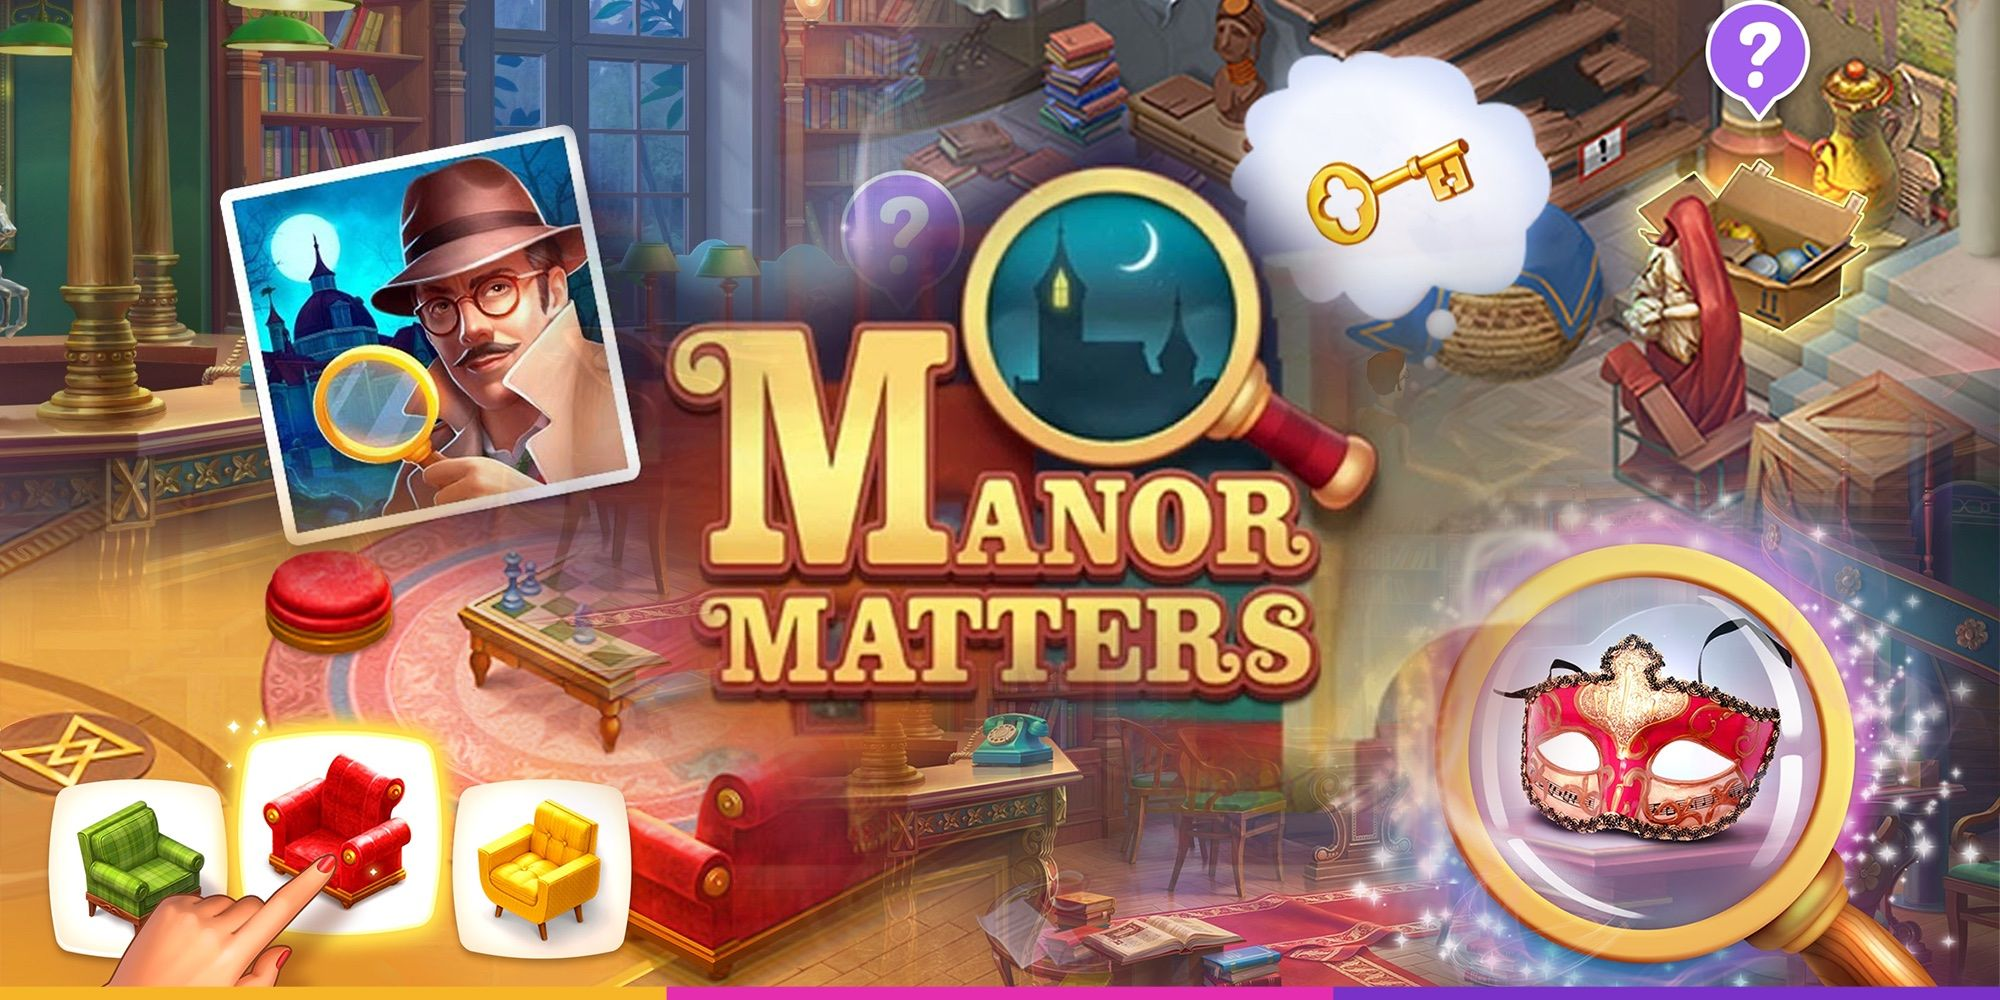 Playrix soft-launched a new mobile game Manor Matters